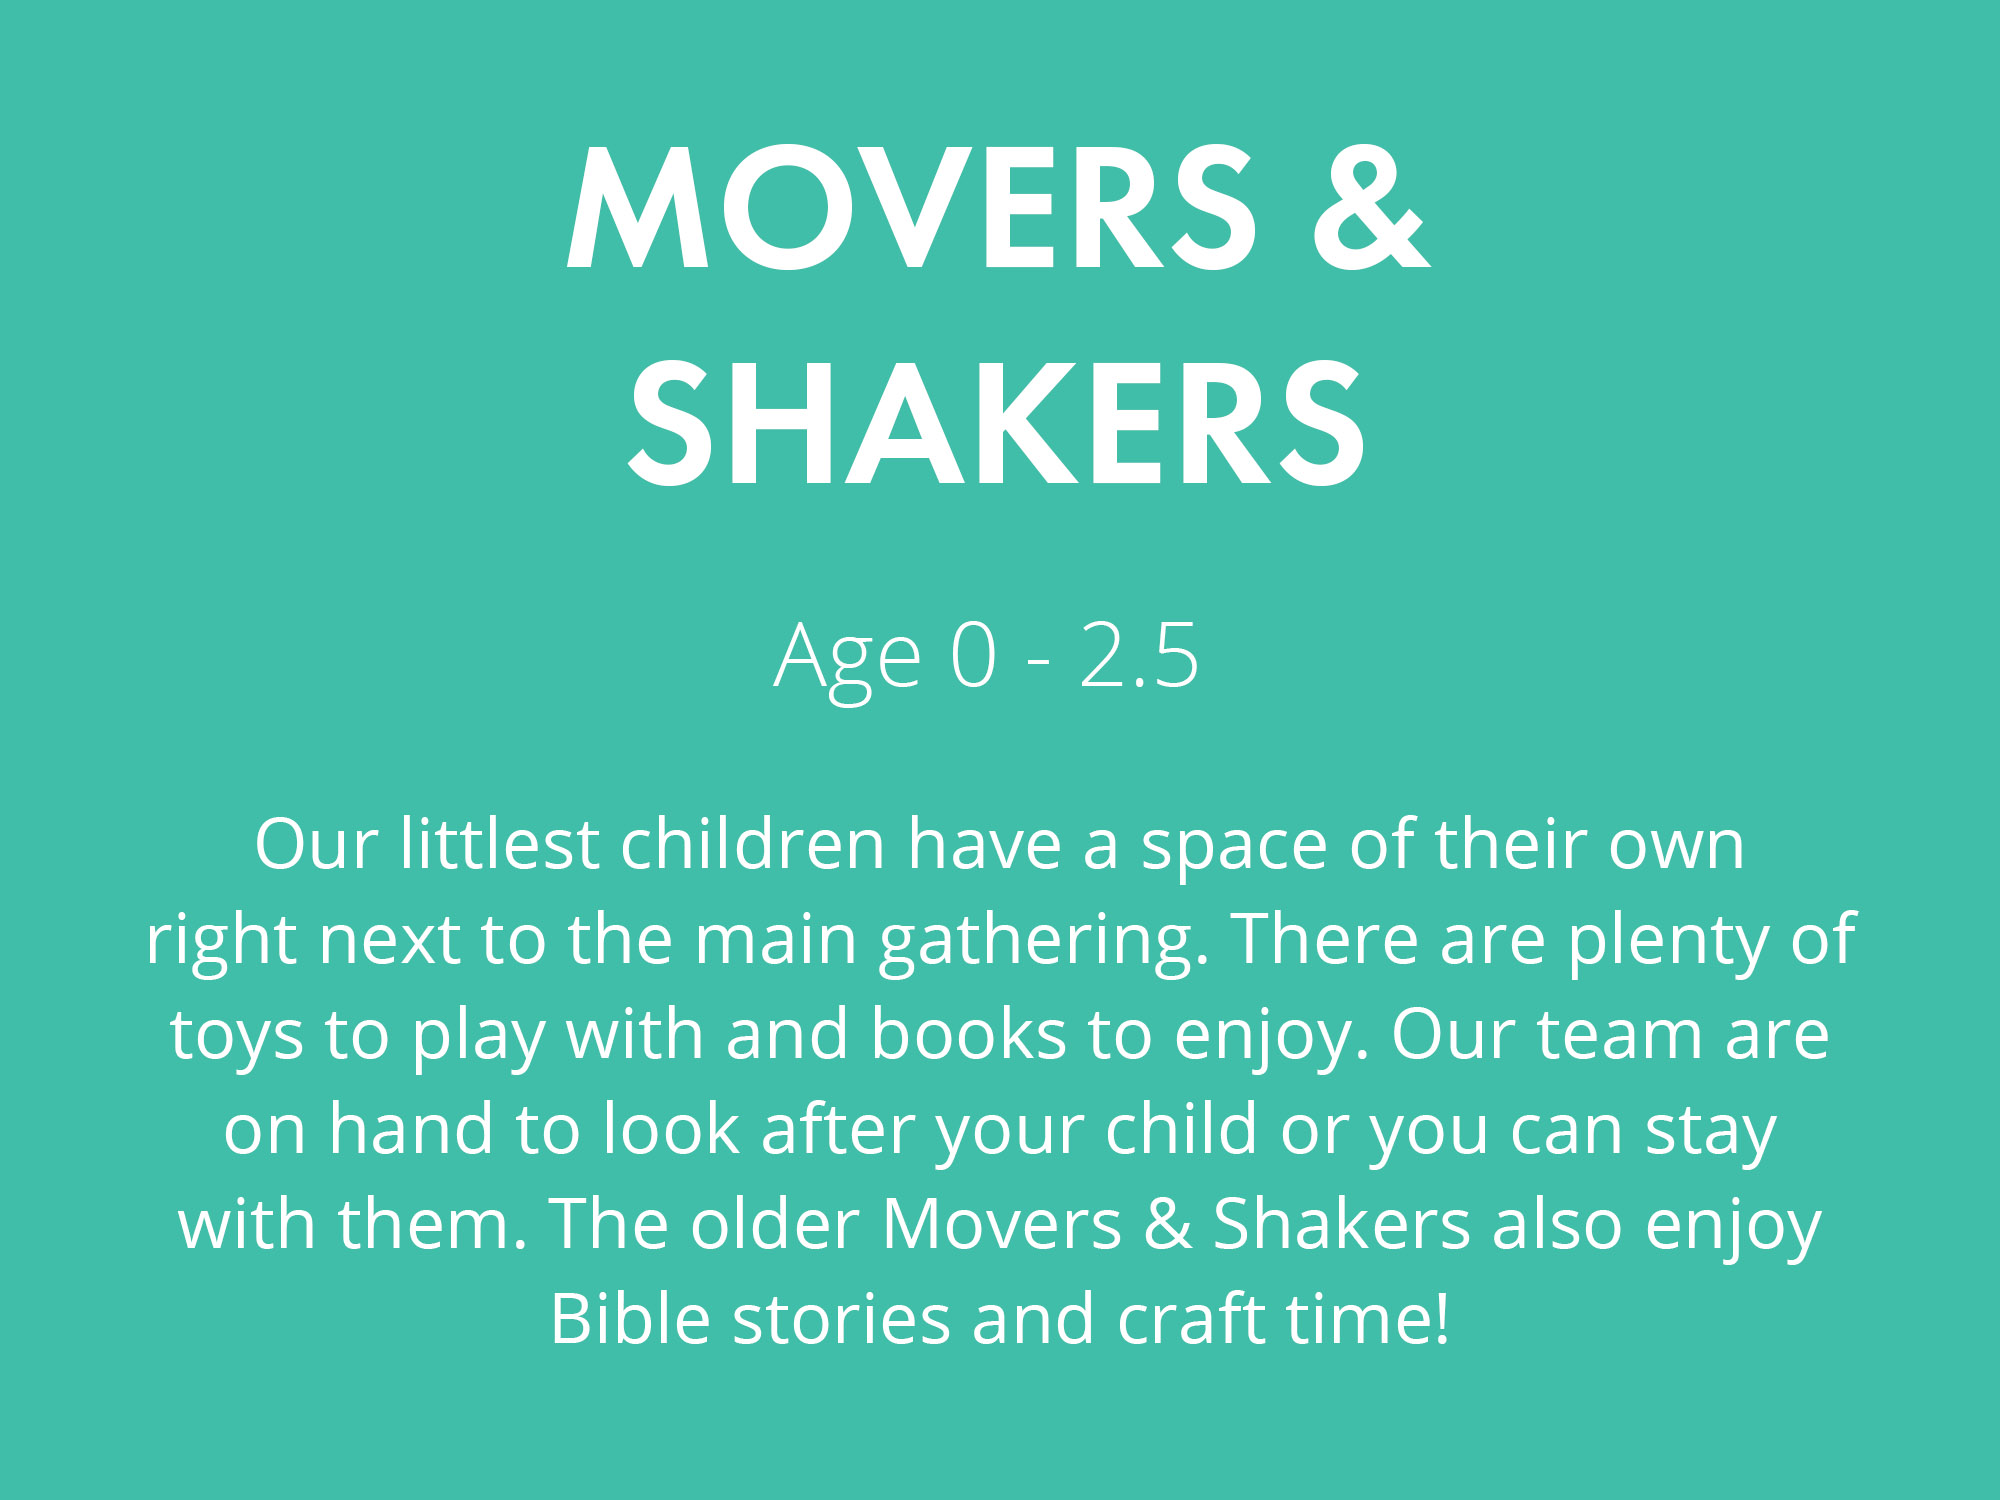 children-groups-about-movers-shakers2.jpg